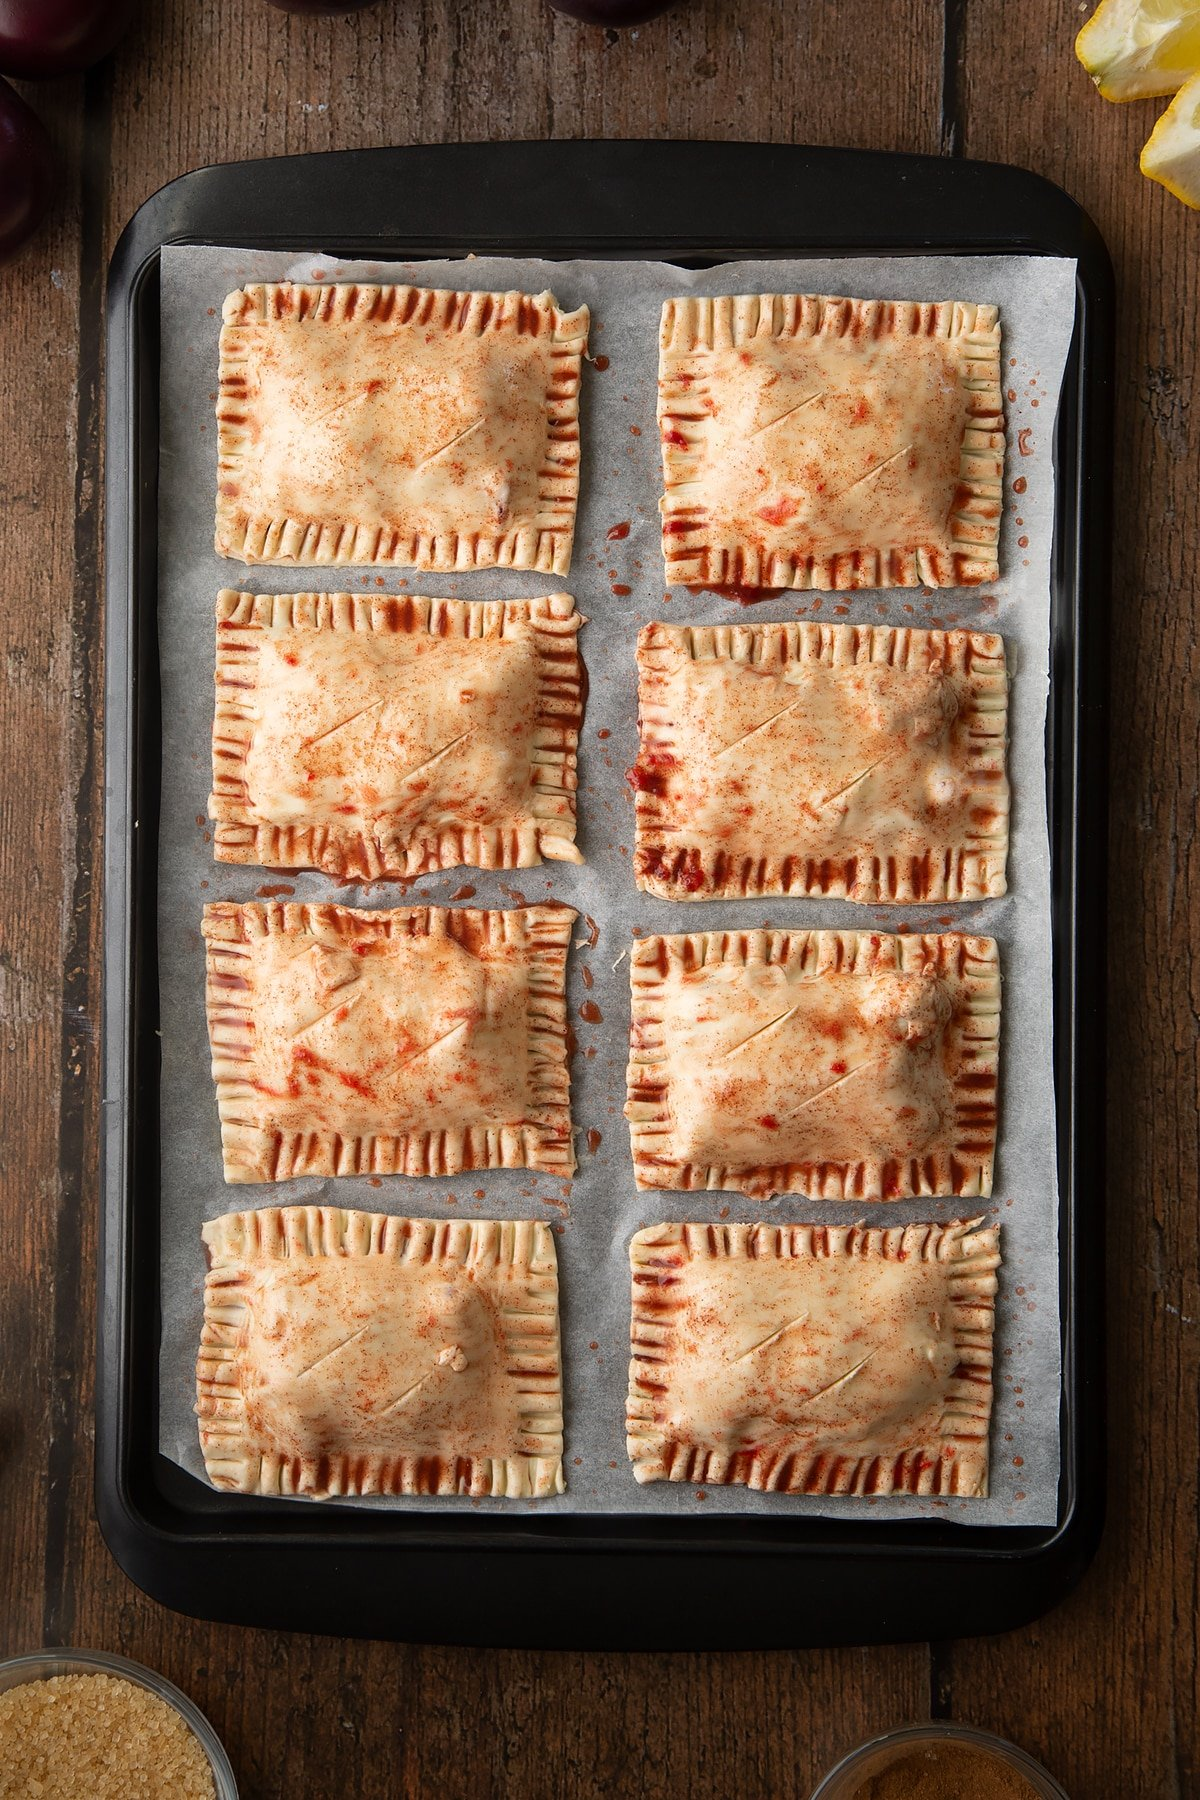 Puff pastry parcels on a baking paper lined tray. The parcels have been brush with plum juice. Slits have been cut across the top of each. Ingredients to make a plum pastry recipe surround the tray.